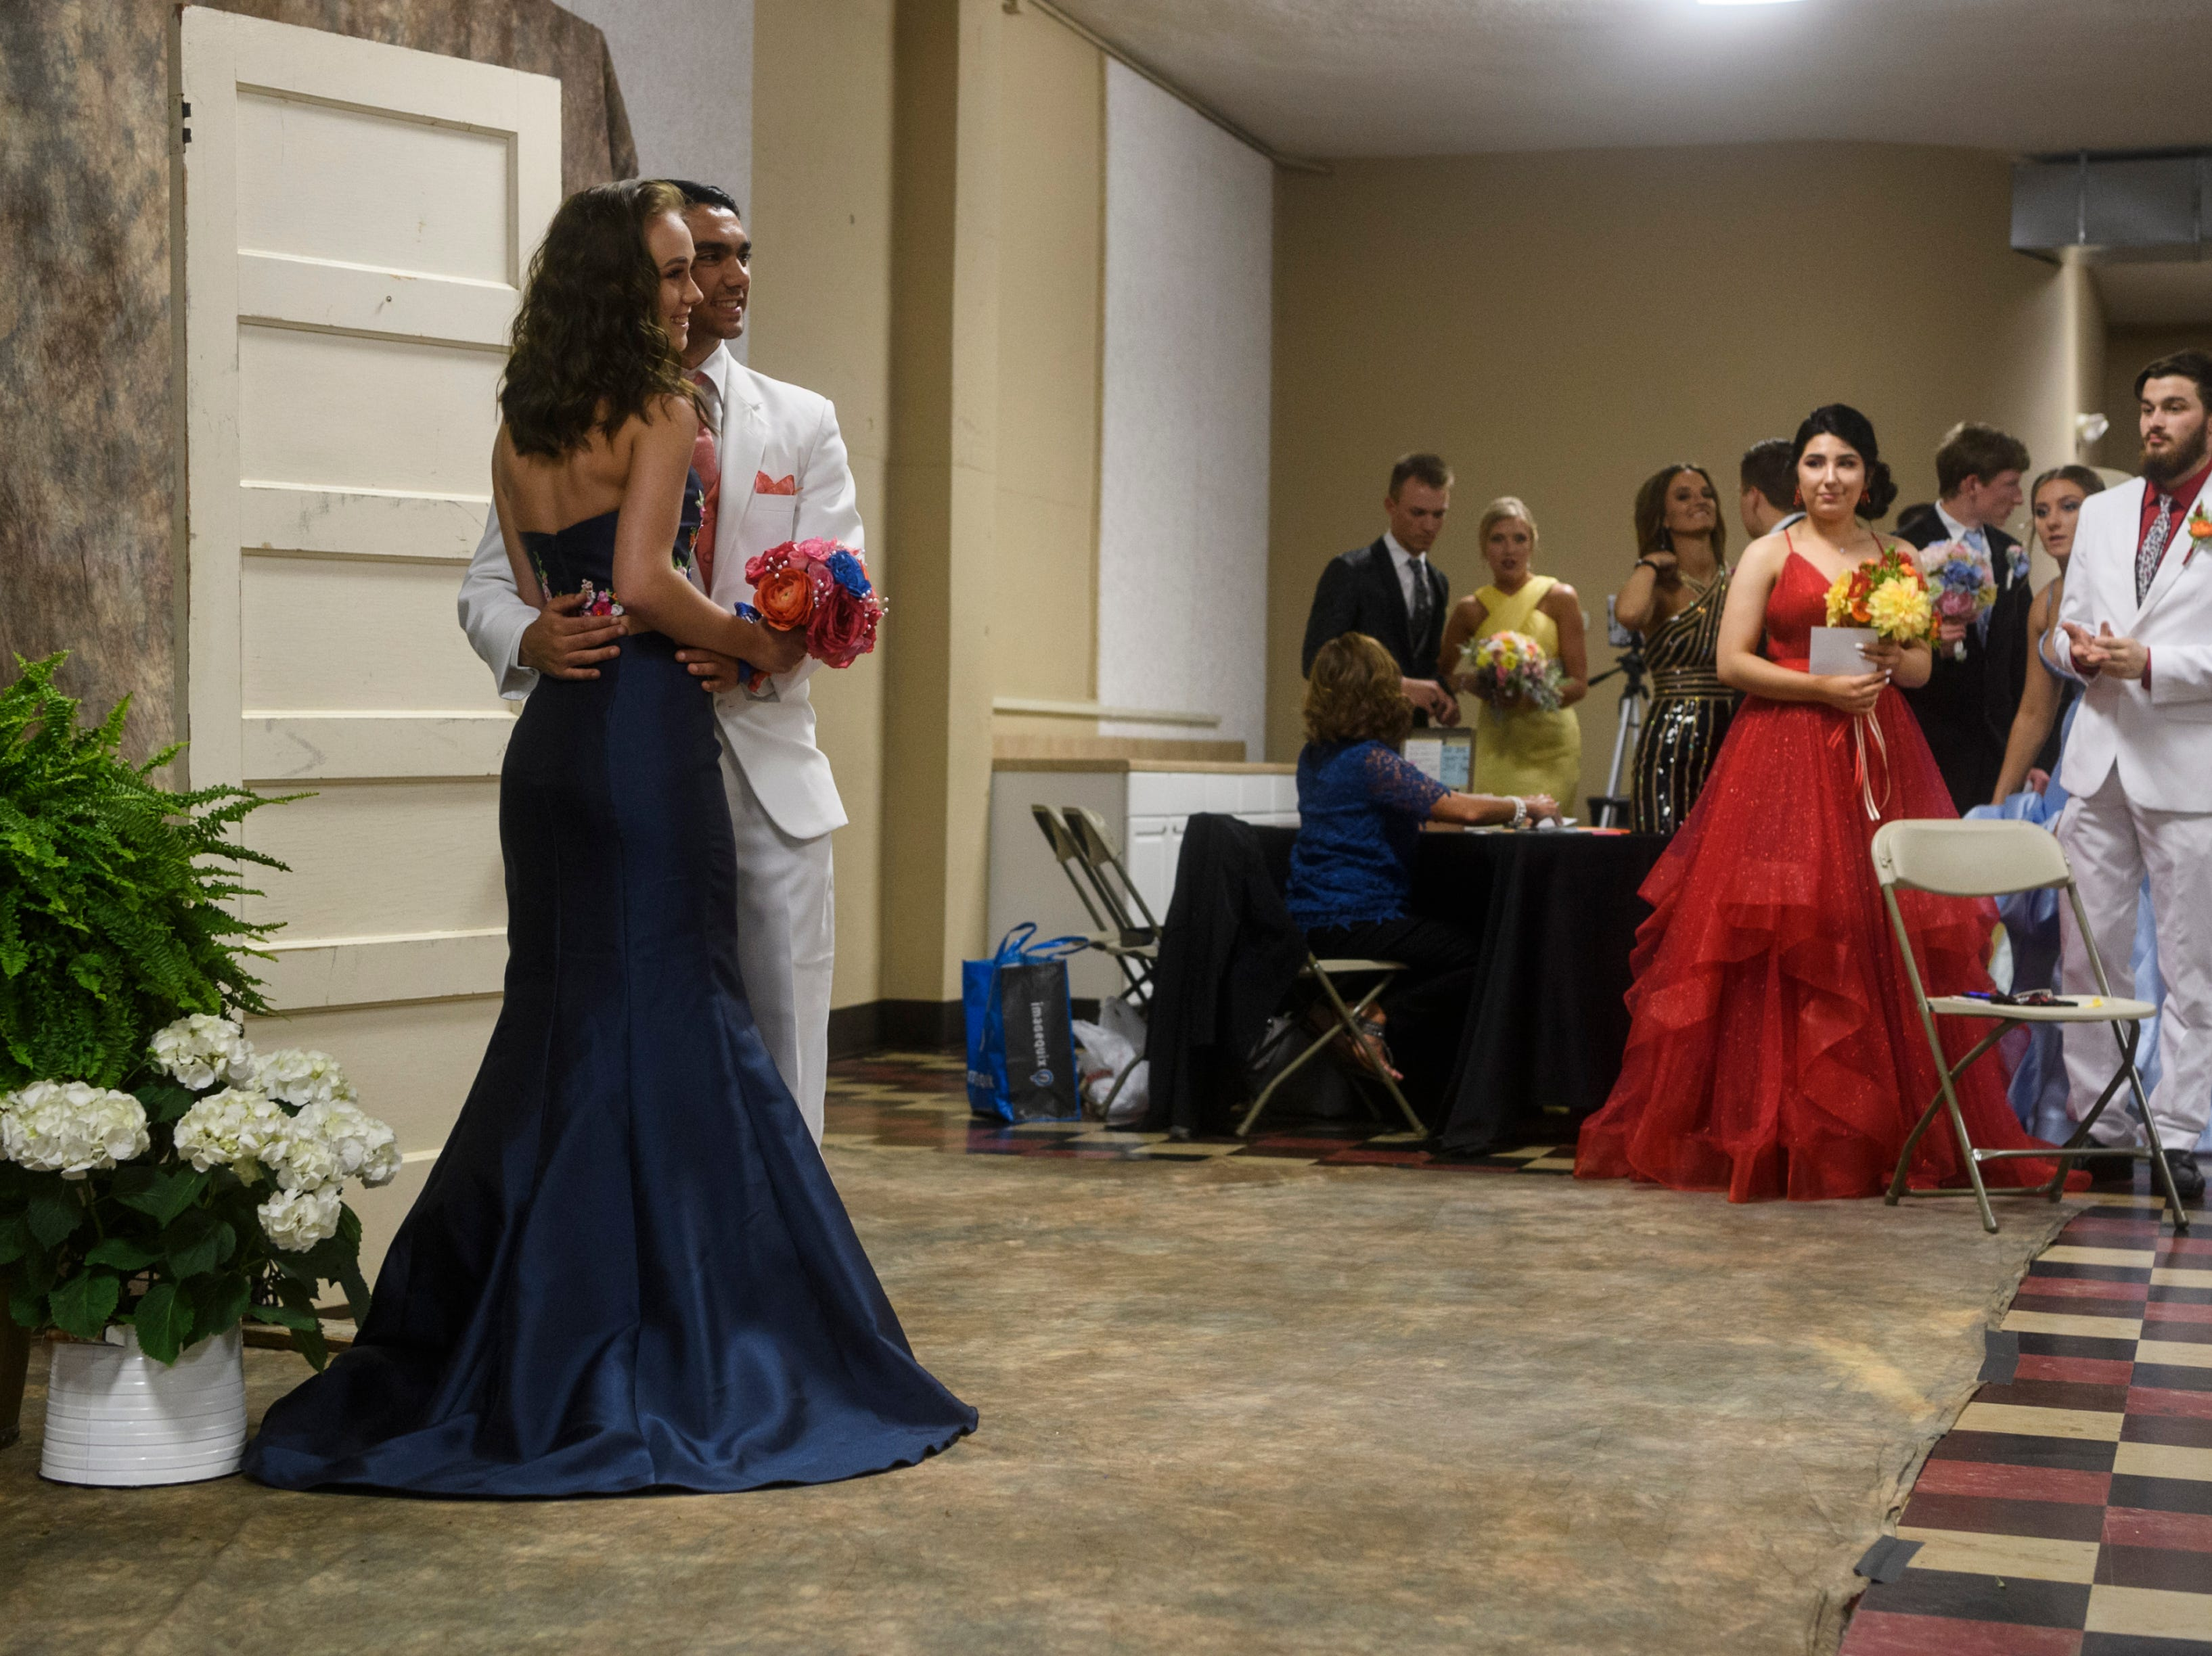 Students get their portraits taken by the Straub Photography group before the start of North Posey's prom held at the Ribeyre Center in New Harmony, Ind., Saturday, May 4, 2019.